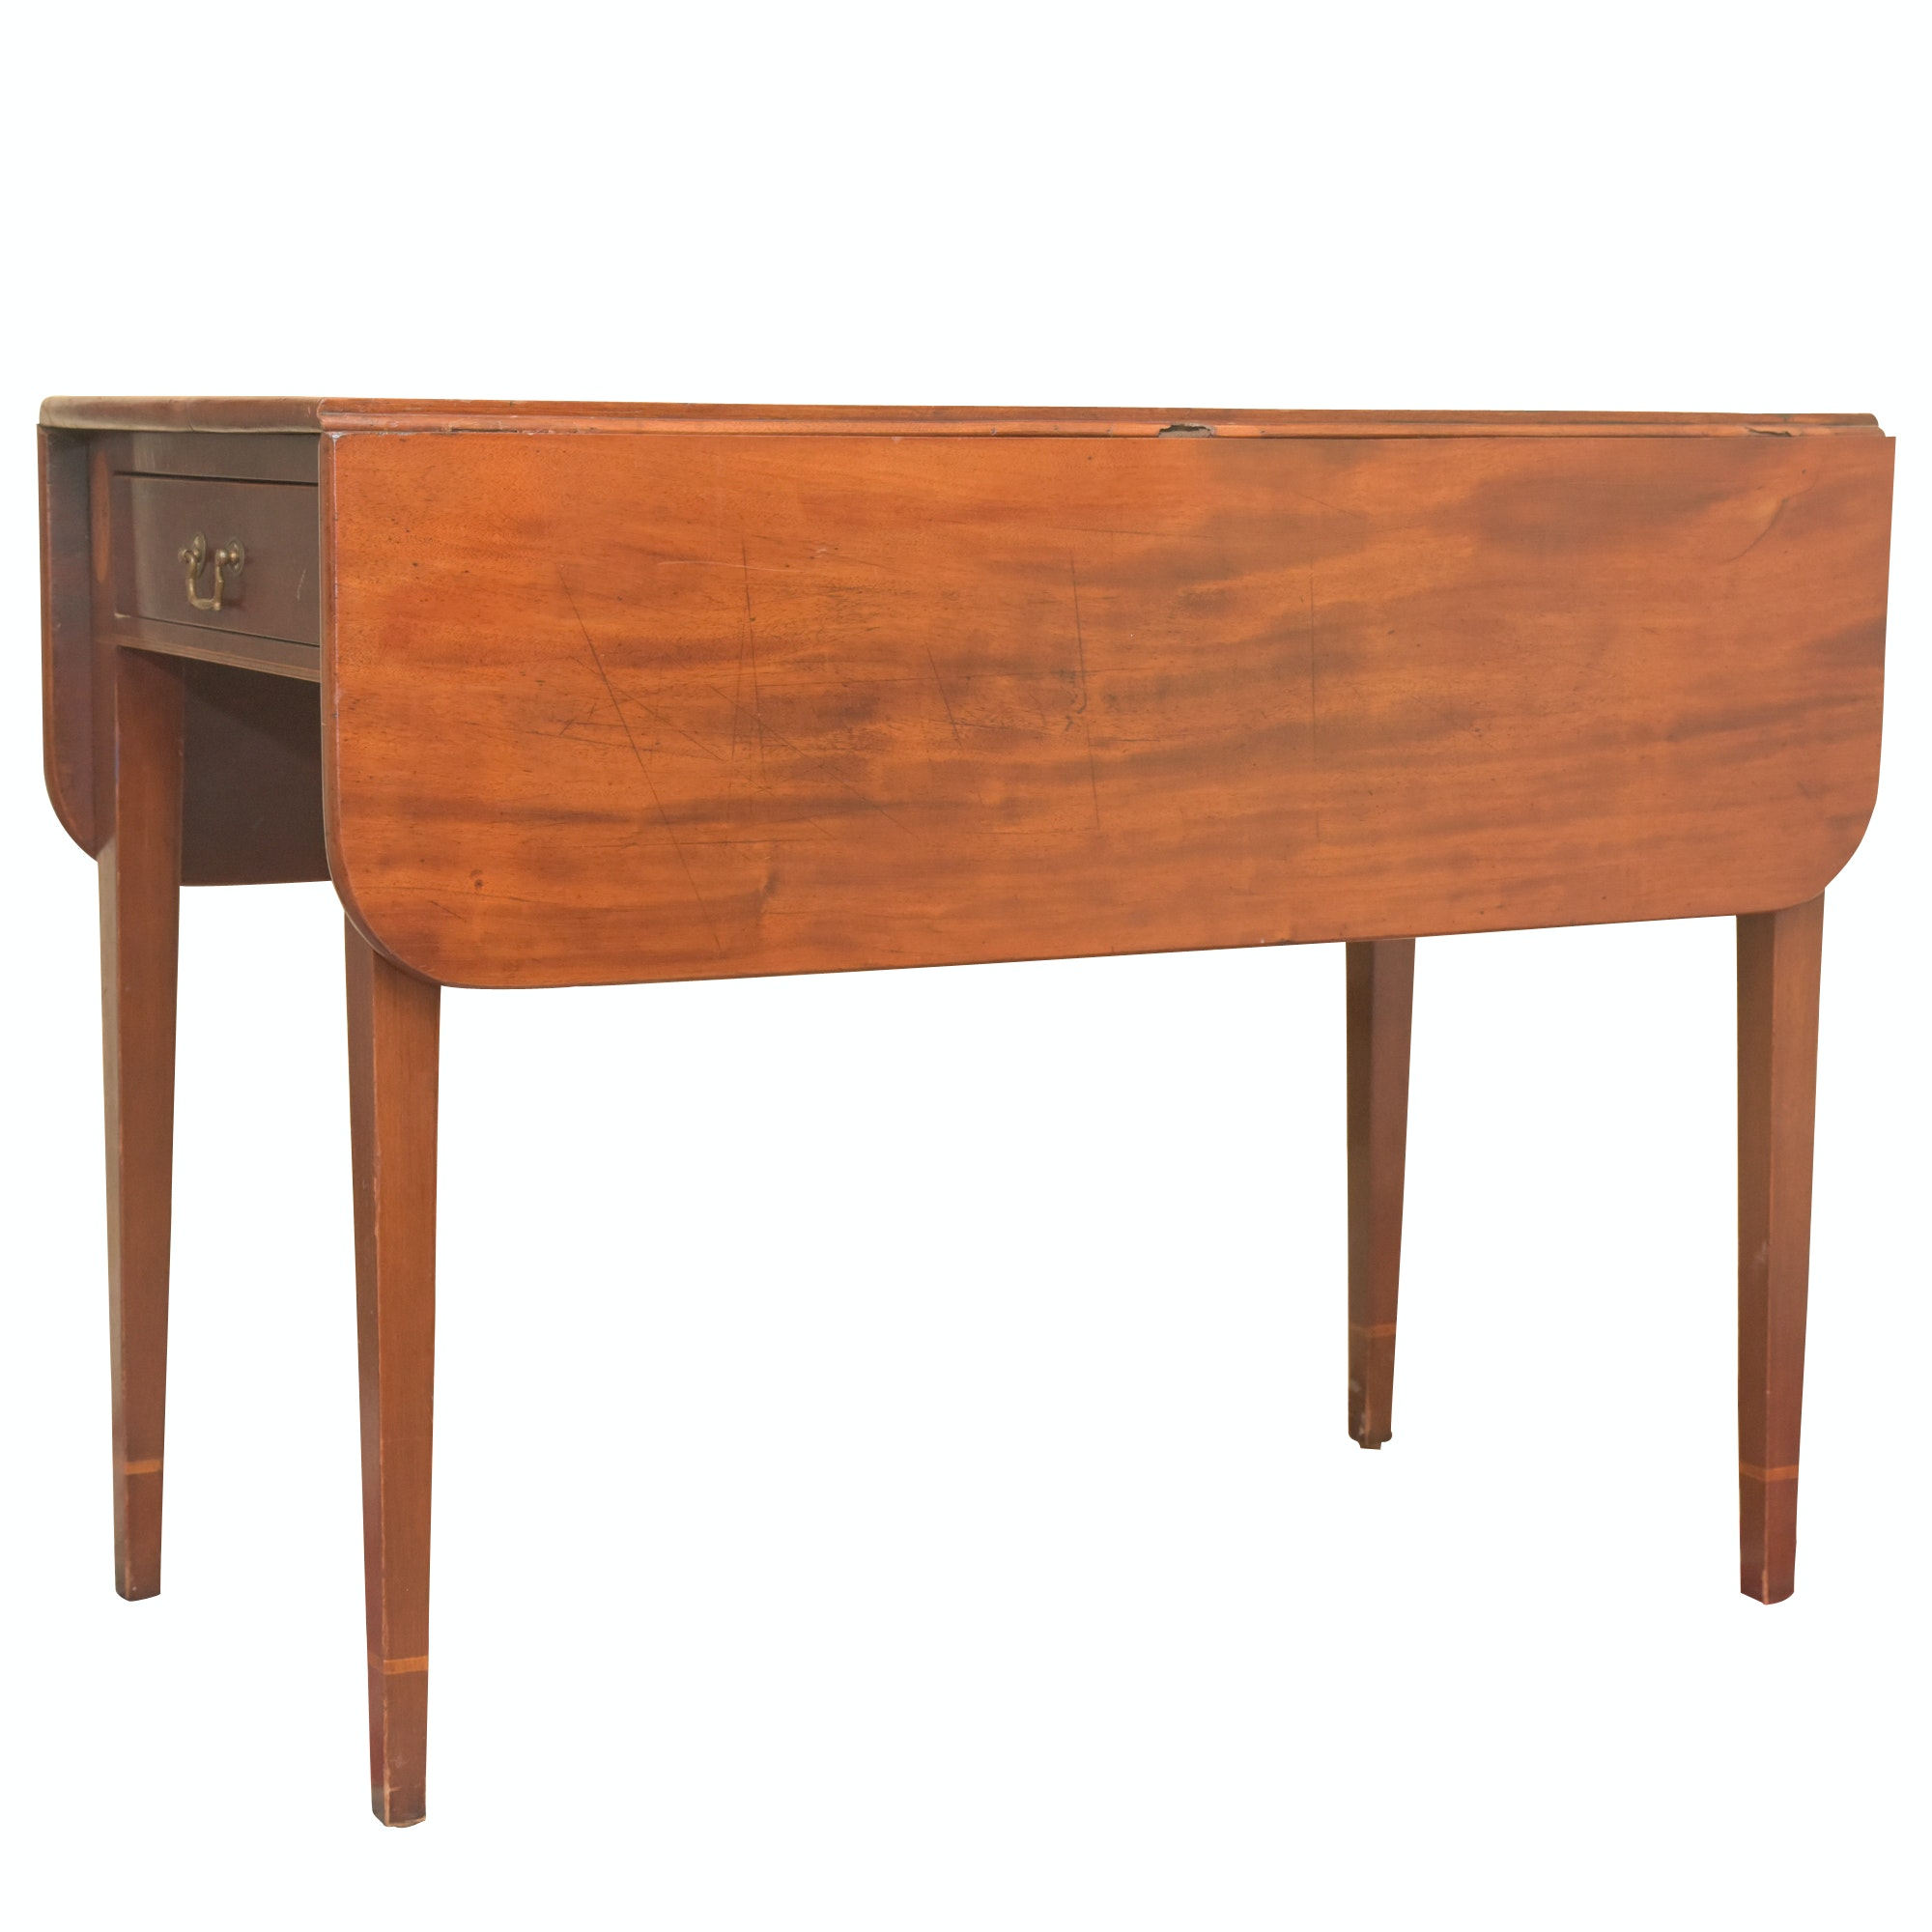 Federal Style String Inlaid Mahogany Drop Leaf Table, Mid 20th Century